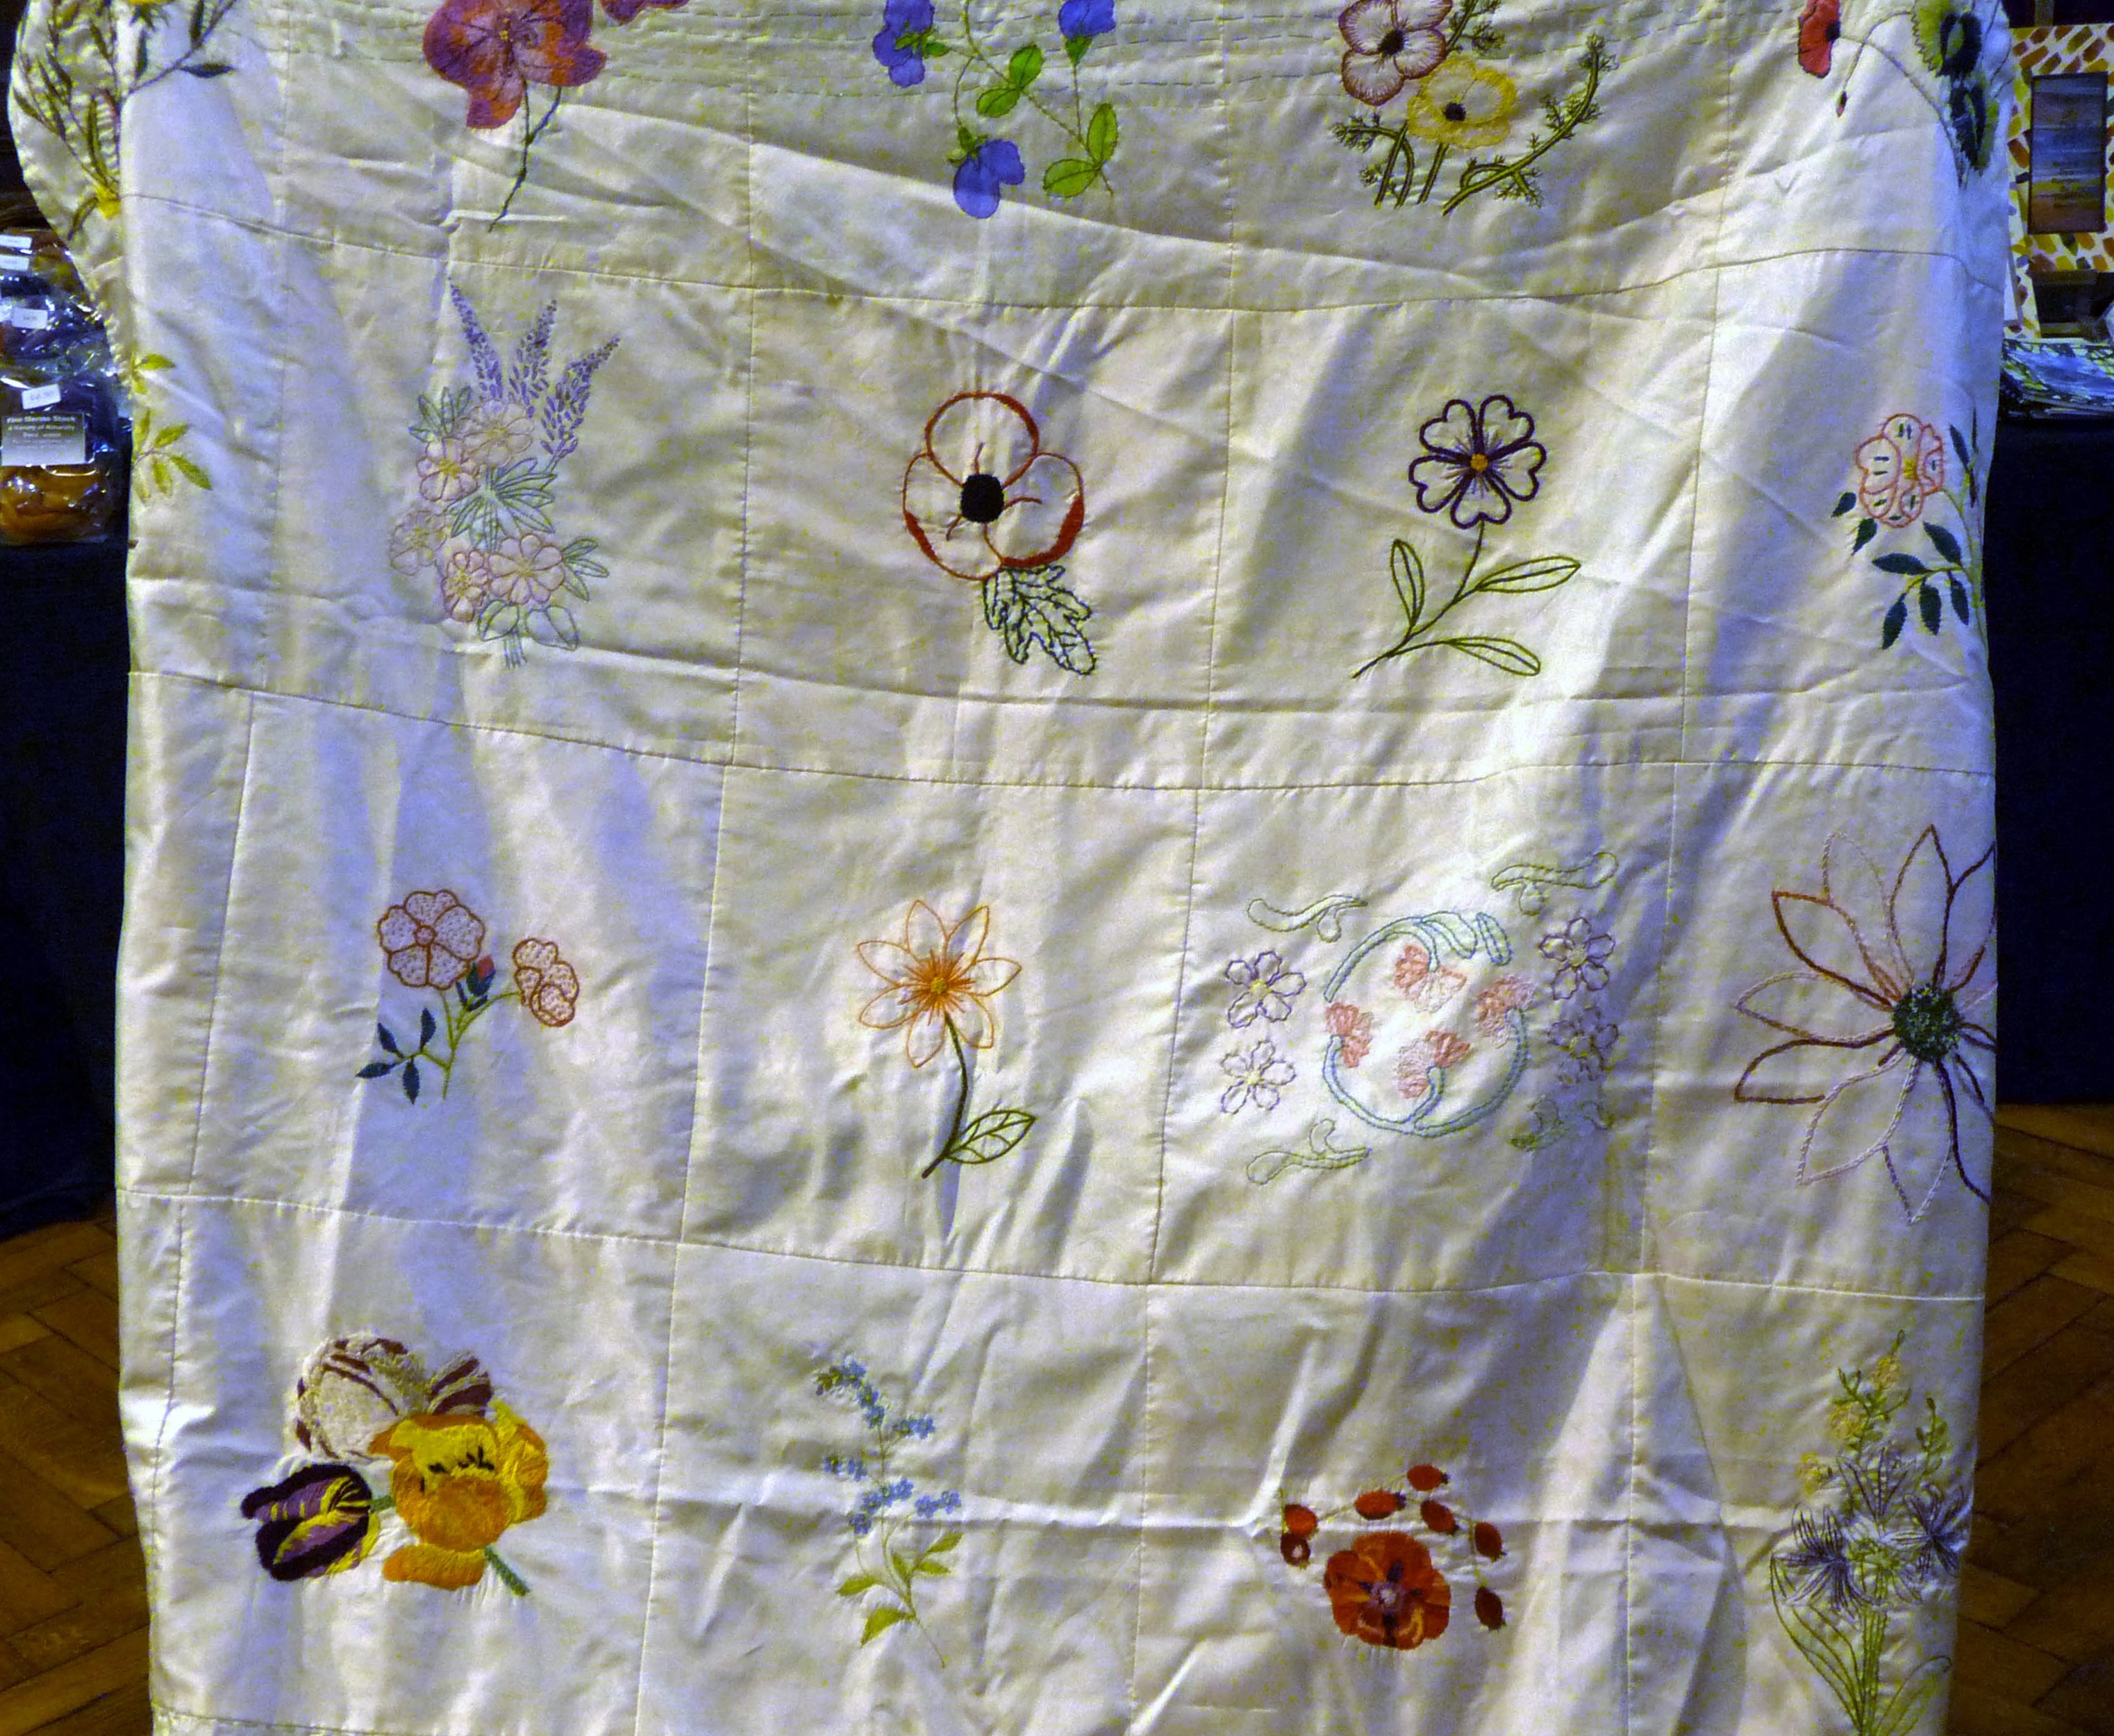 this is an embroidered silk quilt which will be raffled for Sreepur Women's Refuge and Orphanage Charity